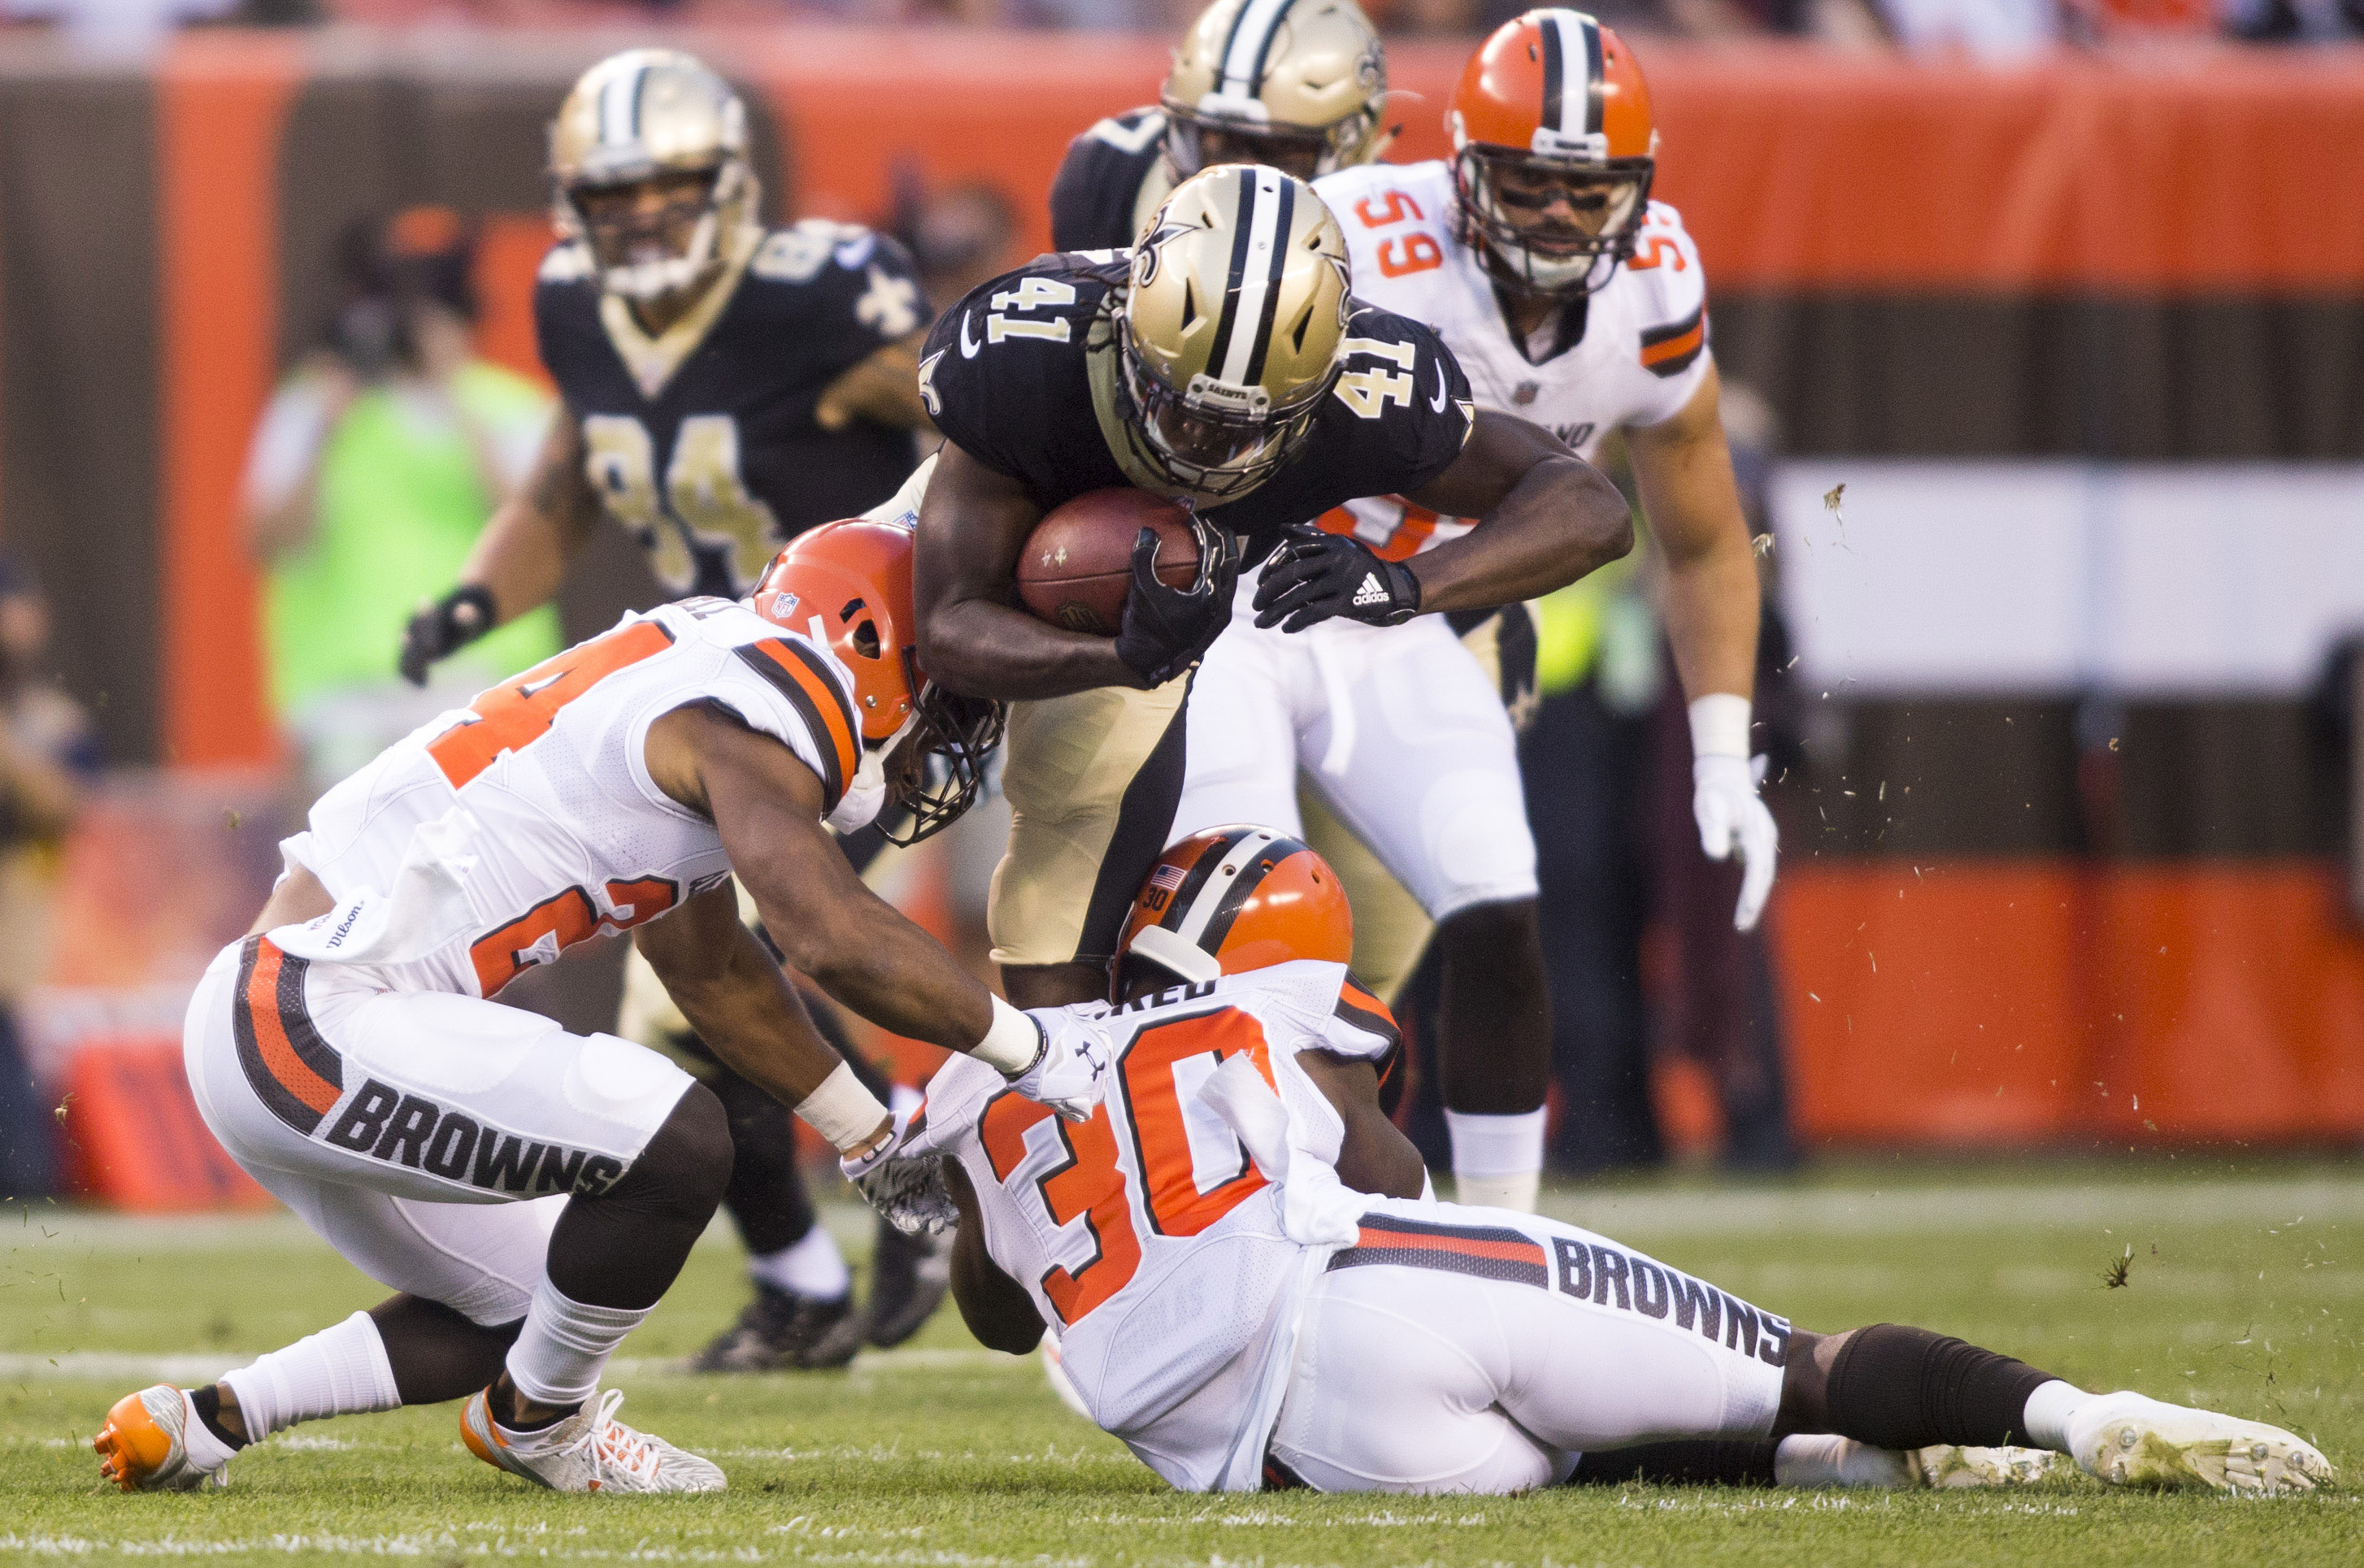 Aug 10, 2017; Cleveland, OH, USA; New Orleans Saints running back Alvin Kamara (41) gets tackled by Cleveland Browns strong safety Ibraheim Campbell (24) and strong safety Derrick Kindred (30) at FirstEnergy Stadium. Campbell was injured on the play.  Mandatory Credit: Scott R. Galvin-USA TODAY Sports